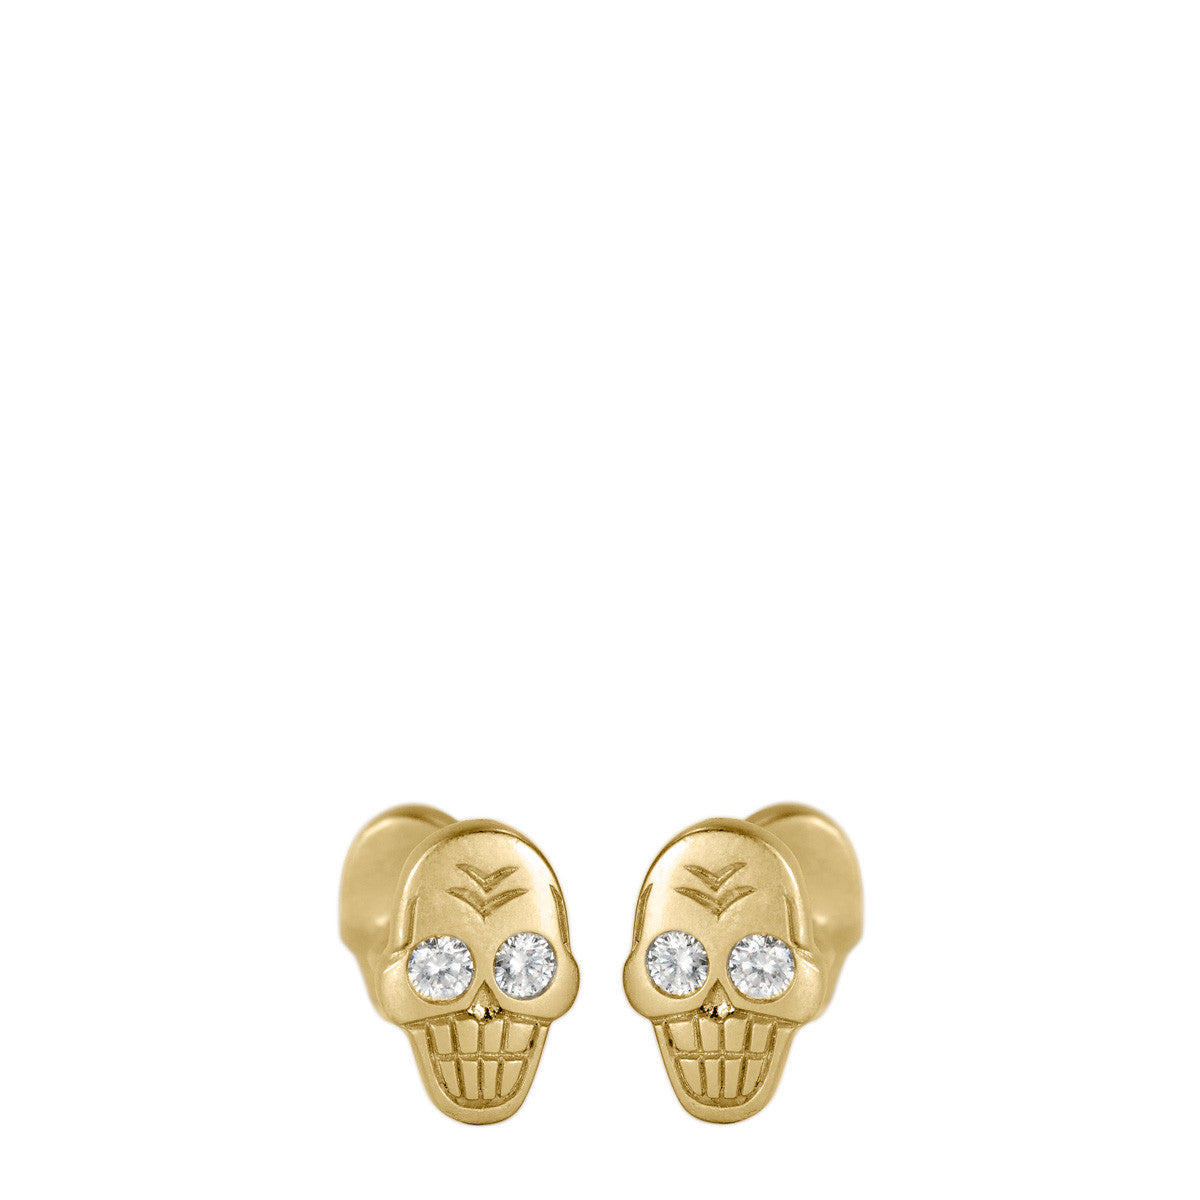 Men's 18K Gold Skull Cufflinks with Diamonds